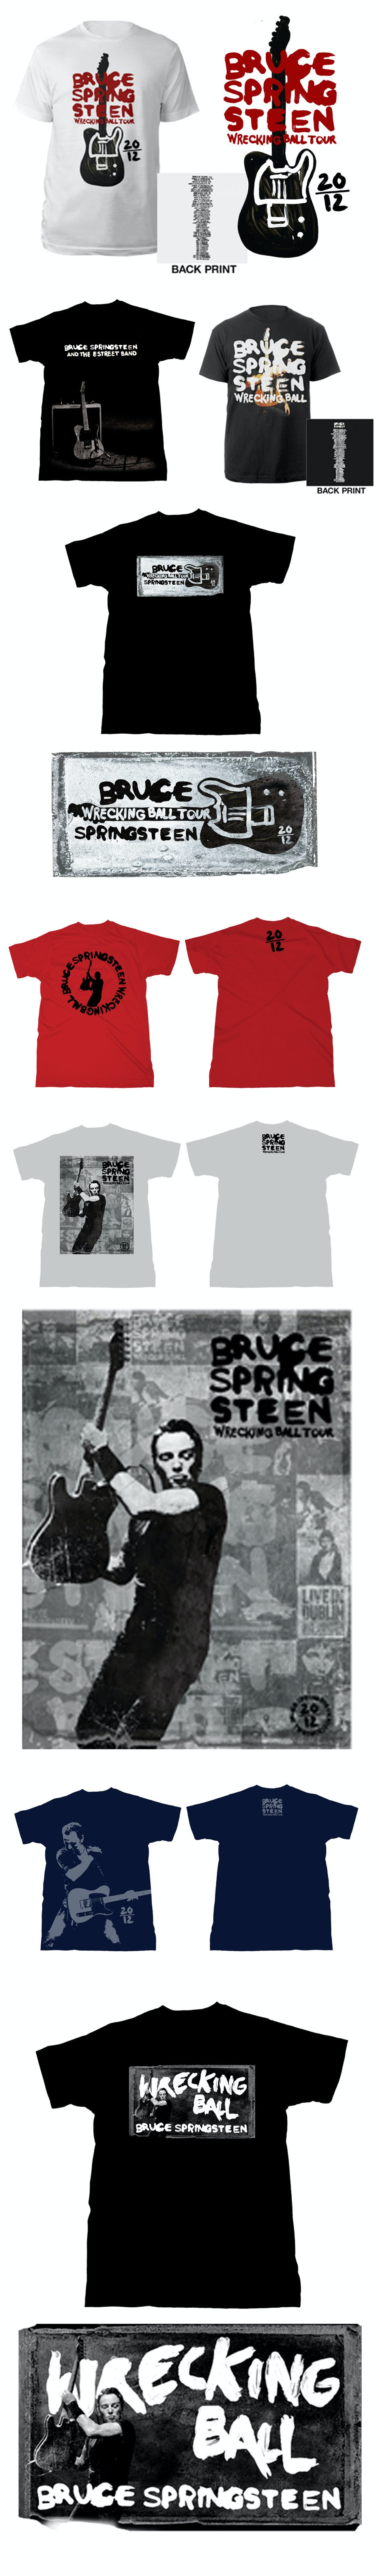 Wrecking Ball Tour Merch - Mens Tees